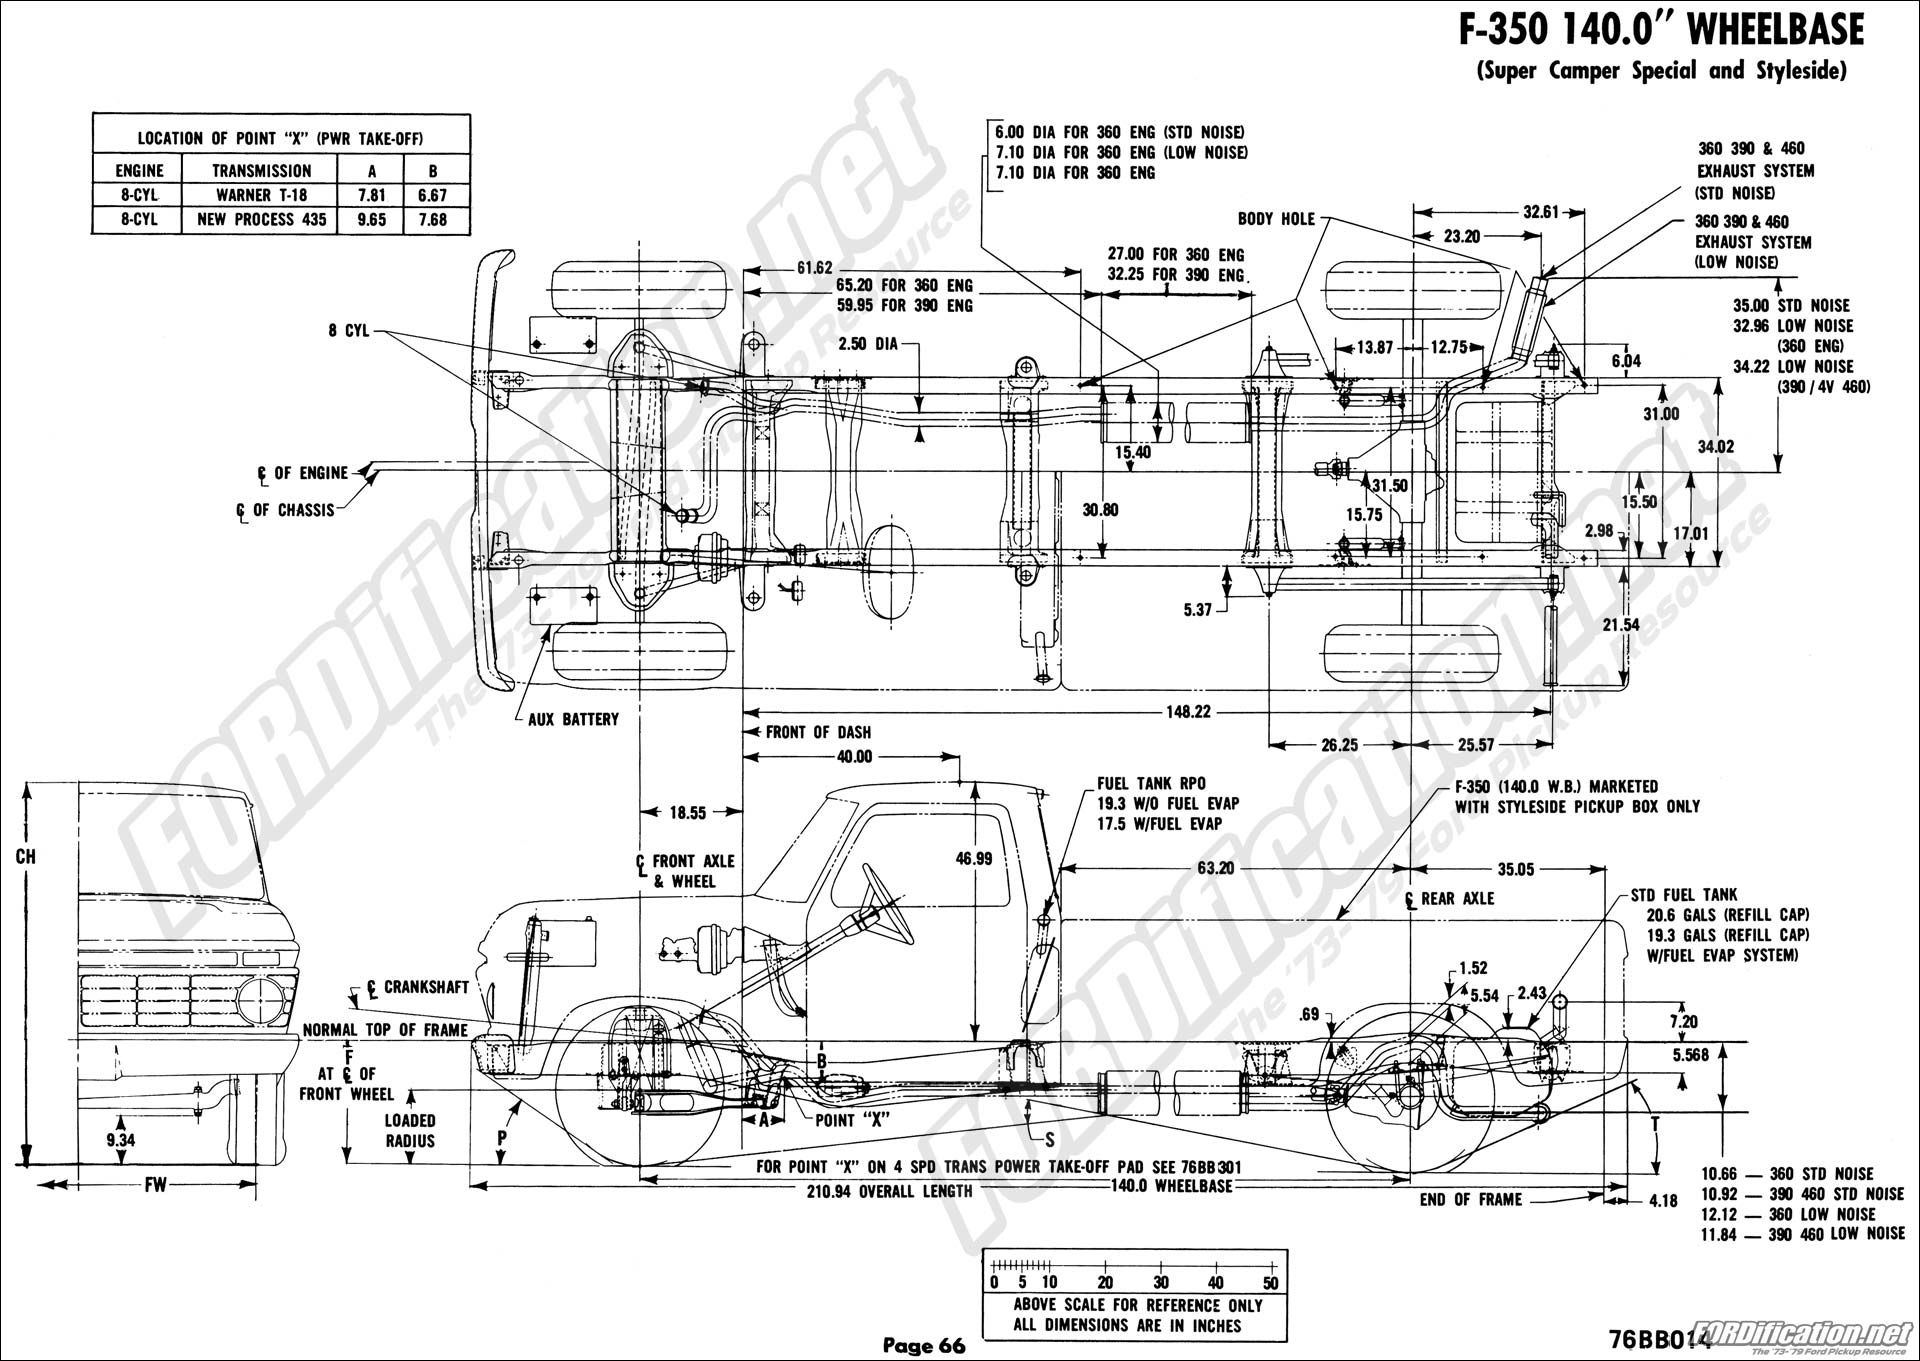 1976 chevy pickup frame diagram great installation of wiring diagram 1976 Lincoln Continental Wiring Diagram 1976 ford body builder s layout book fordification net rh fordification net 1972 chevy pickup 1973 chevy pickup